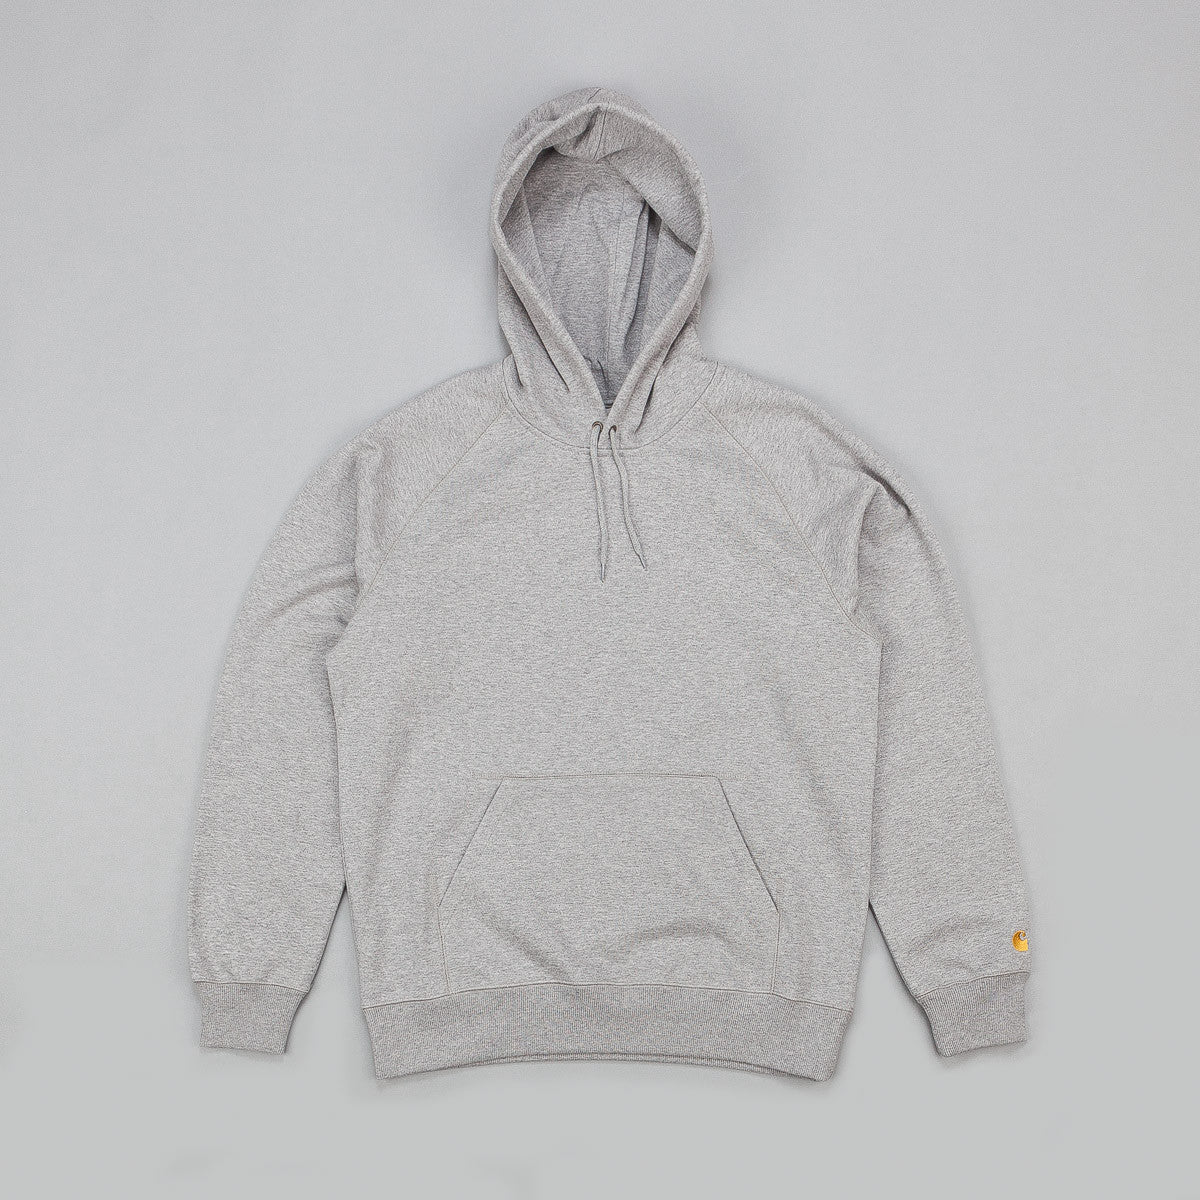 Carhartt Chase LT Hooded Sweatshirt